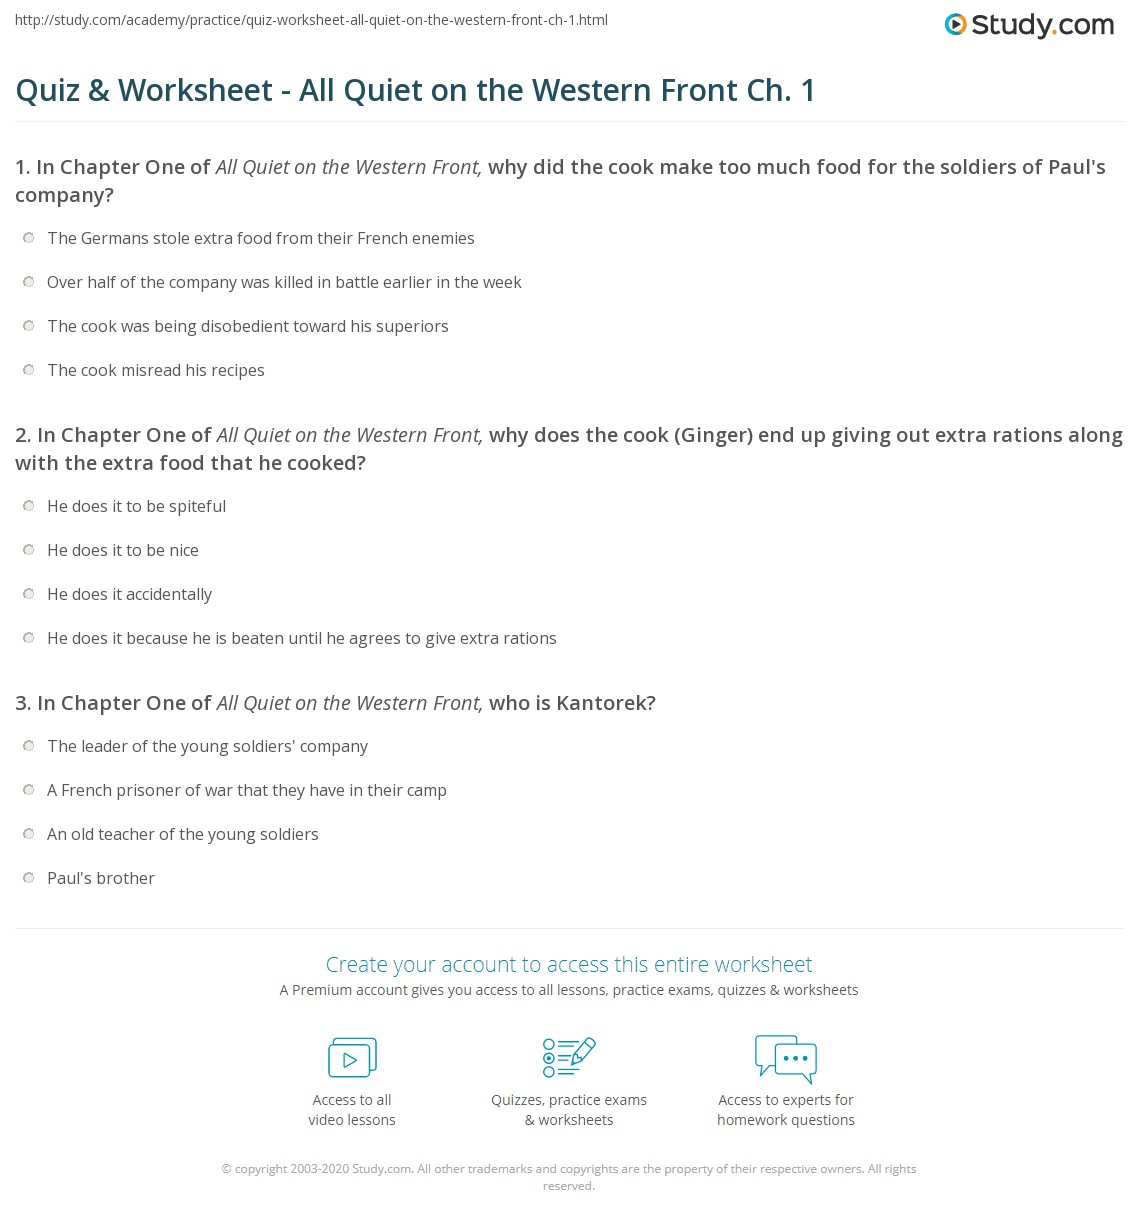 all quiet on the western front worksheet rringband quiz worksheet all quiet on the western front ch 1 study com